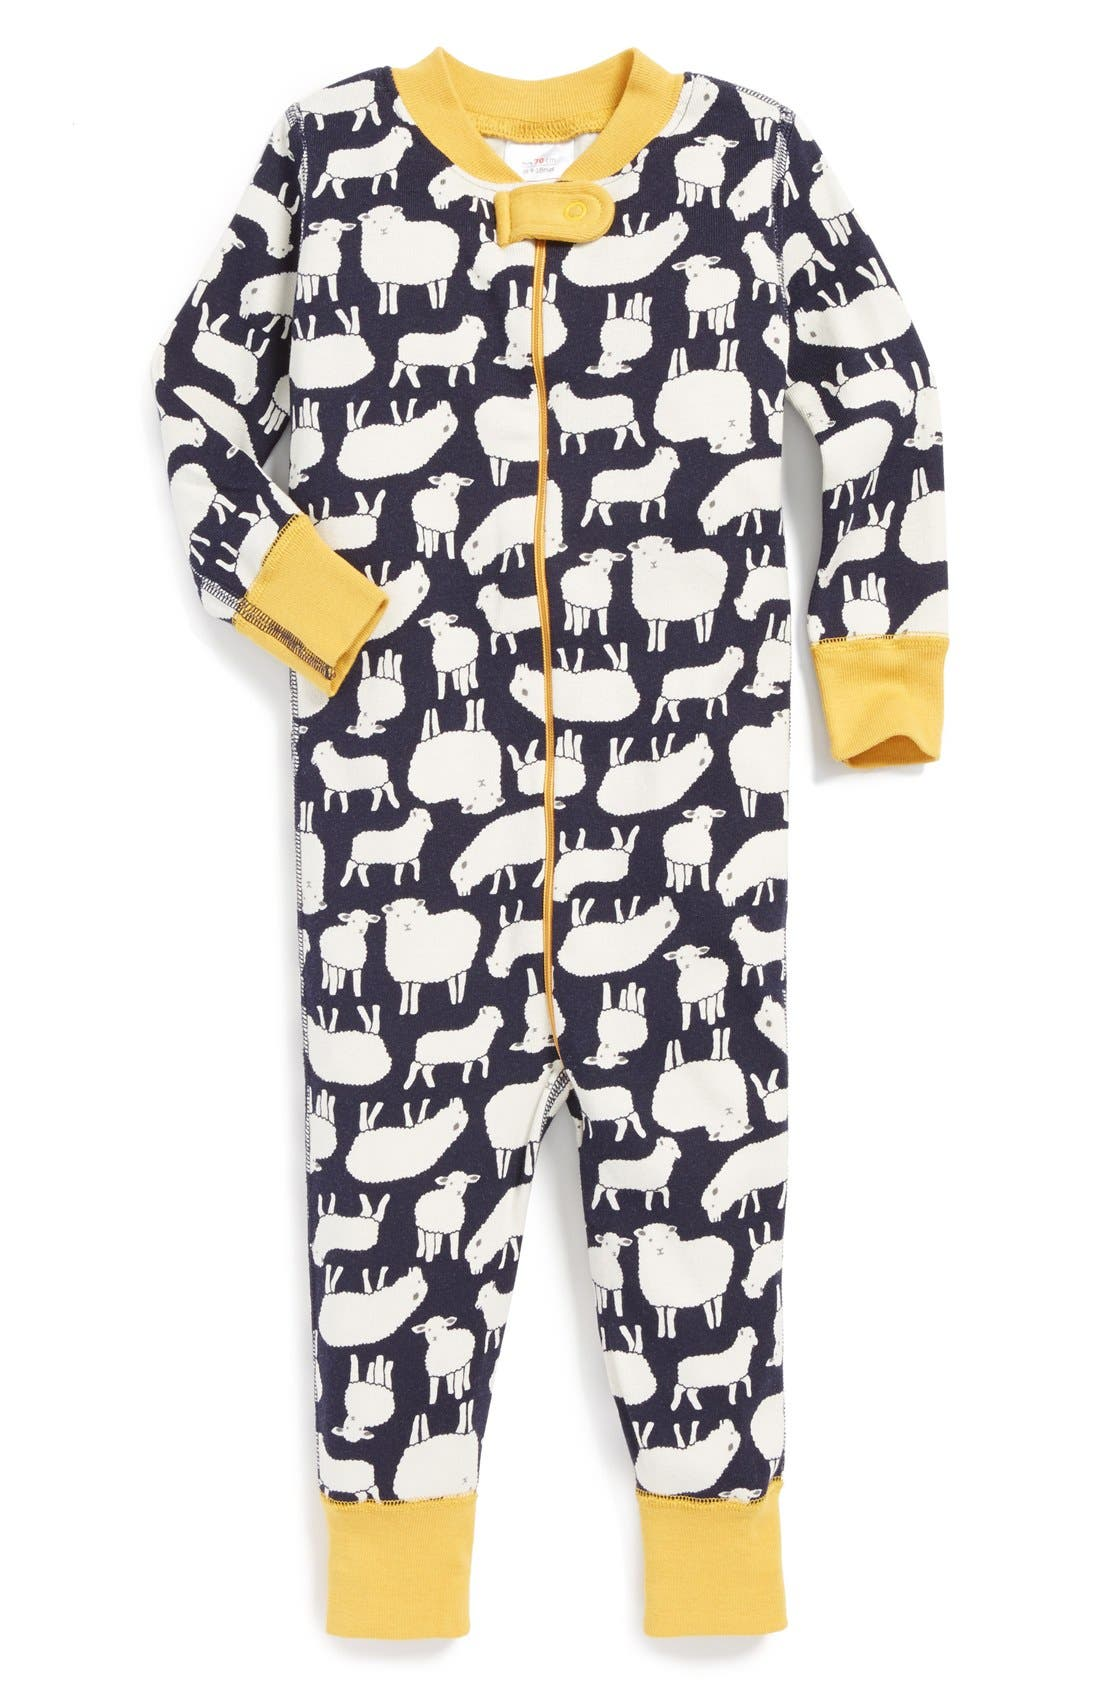 Main Image - Hanna Andersson Fitted Romper (Baby)